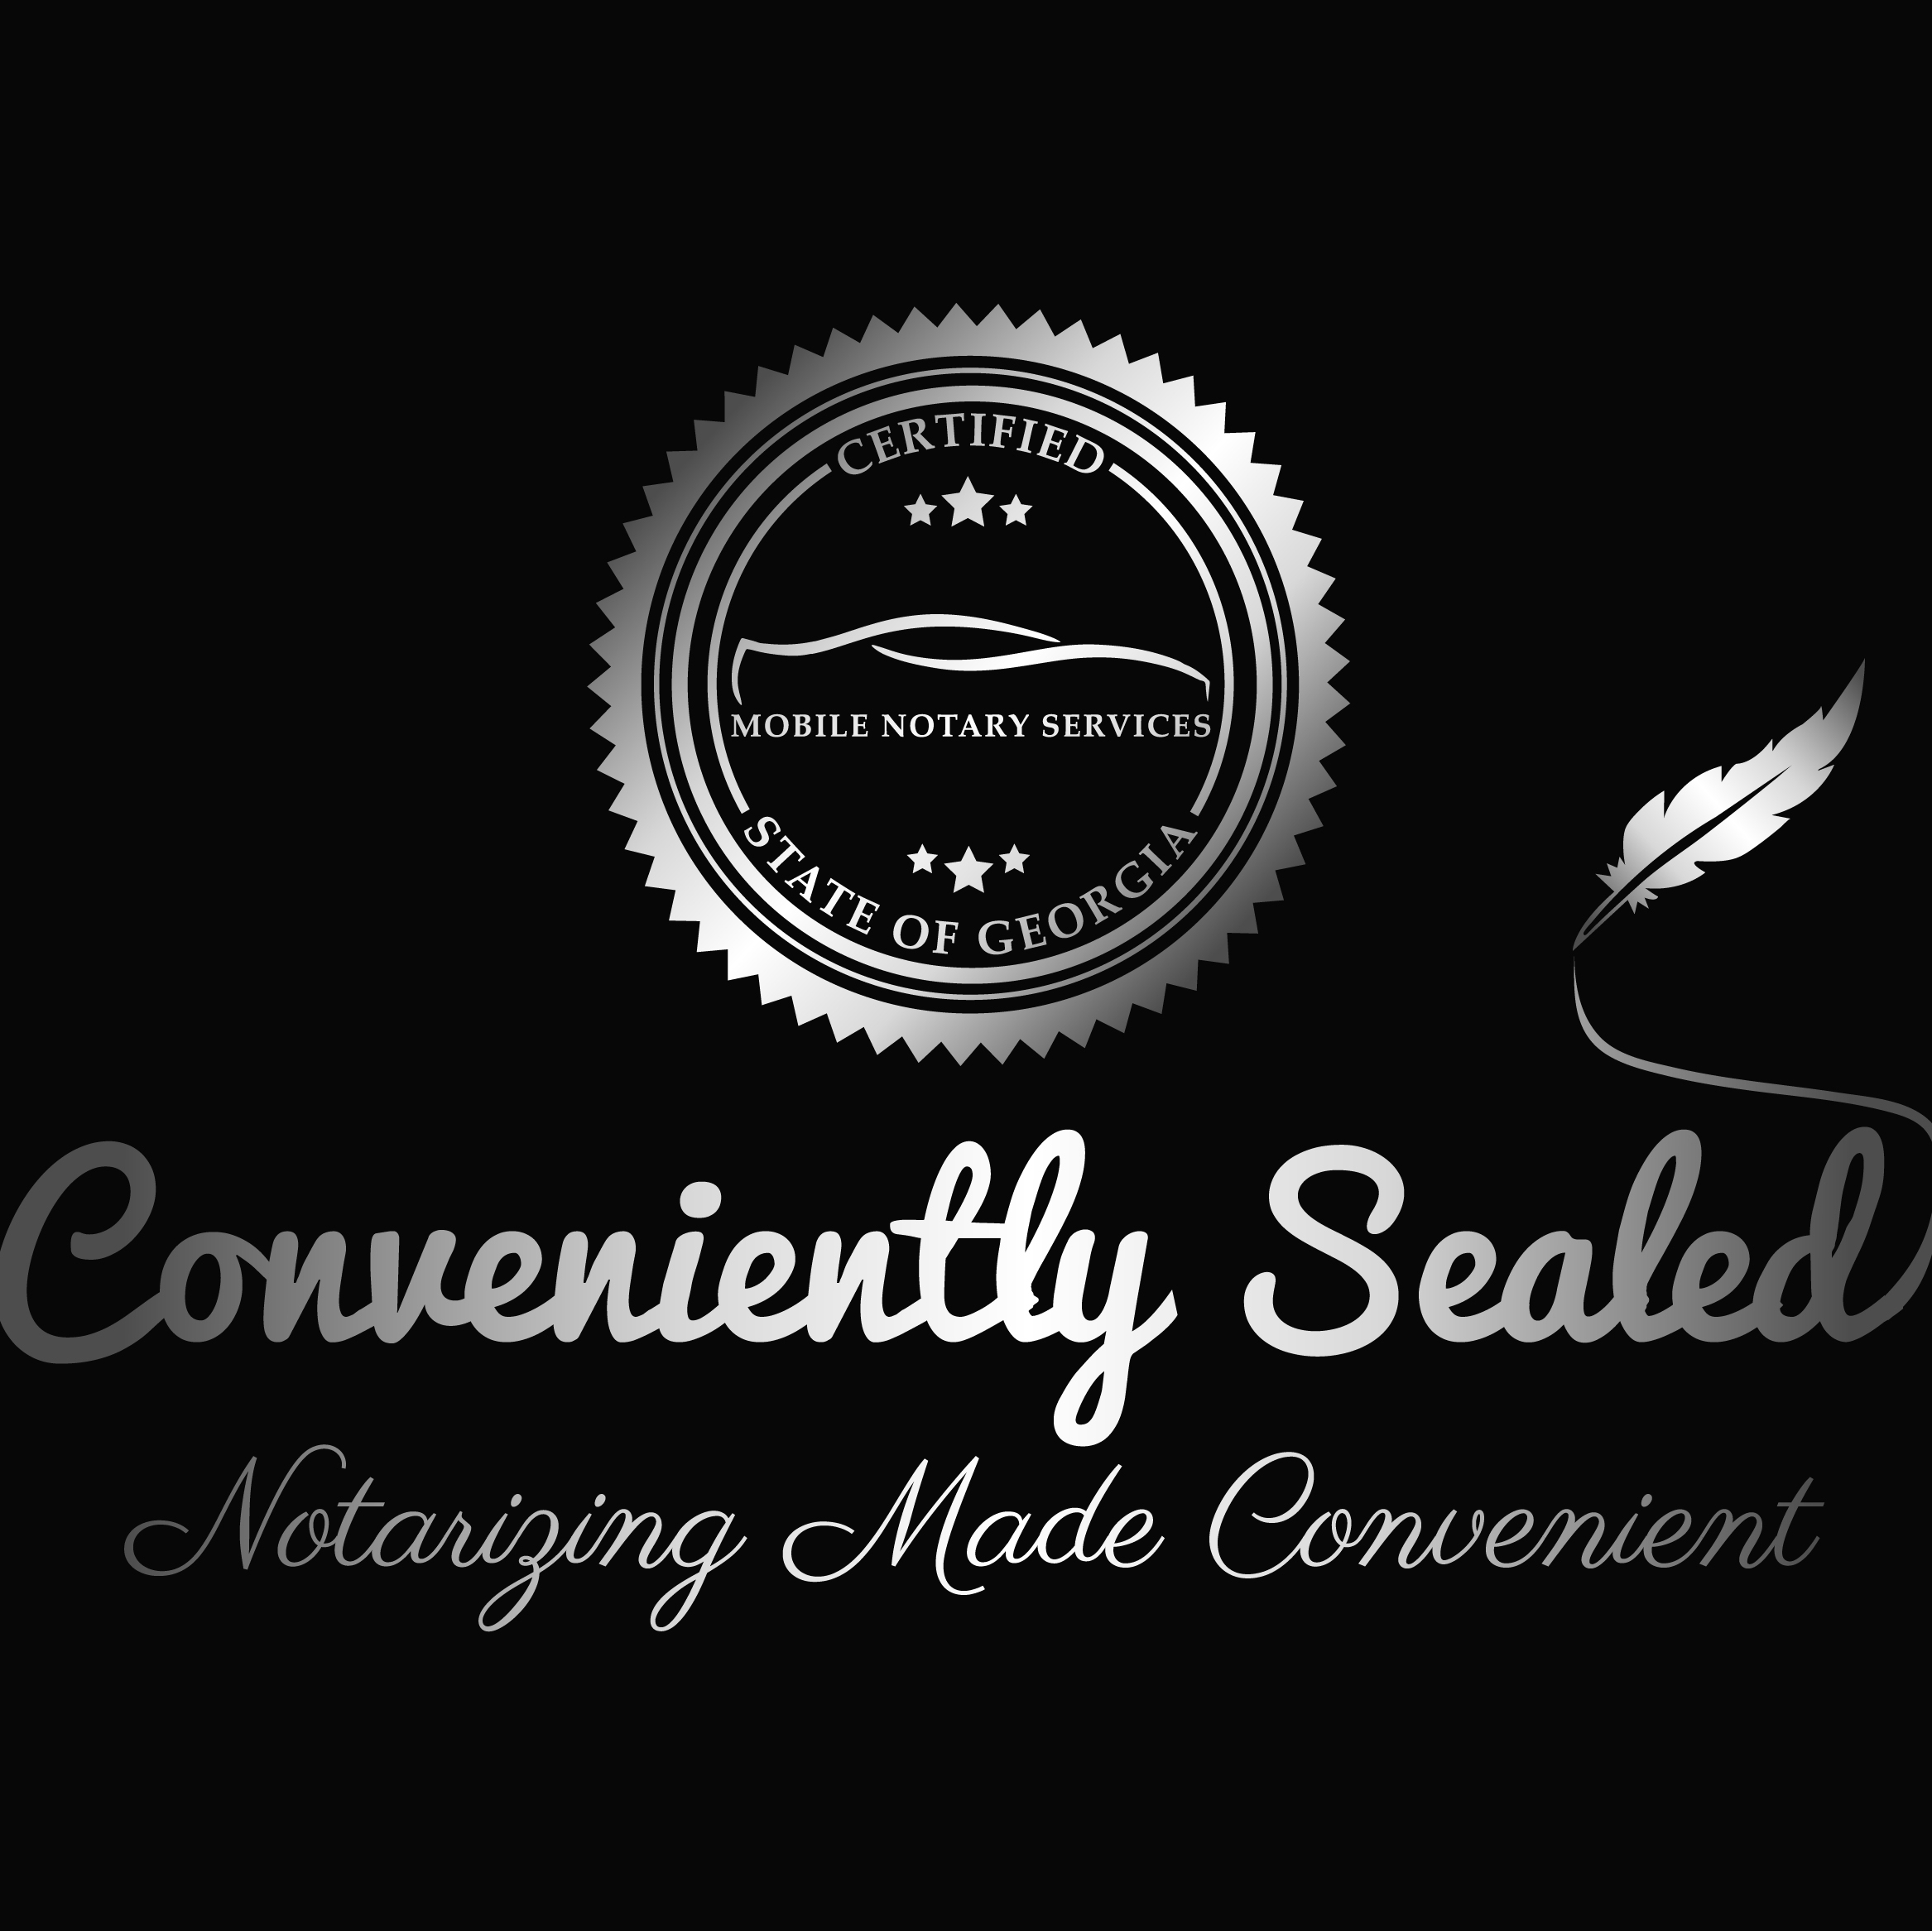 Conveniently Sealed Mobile Notary Services LLC